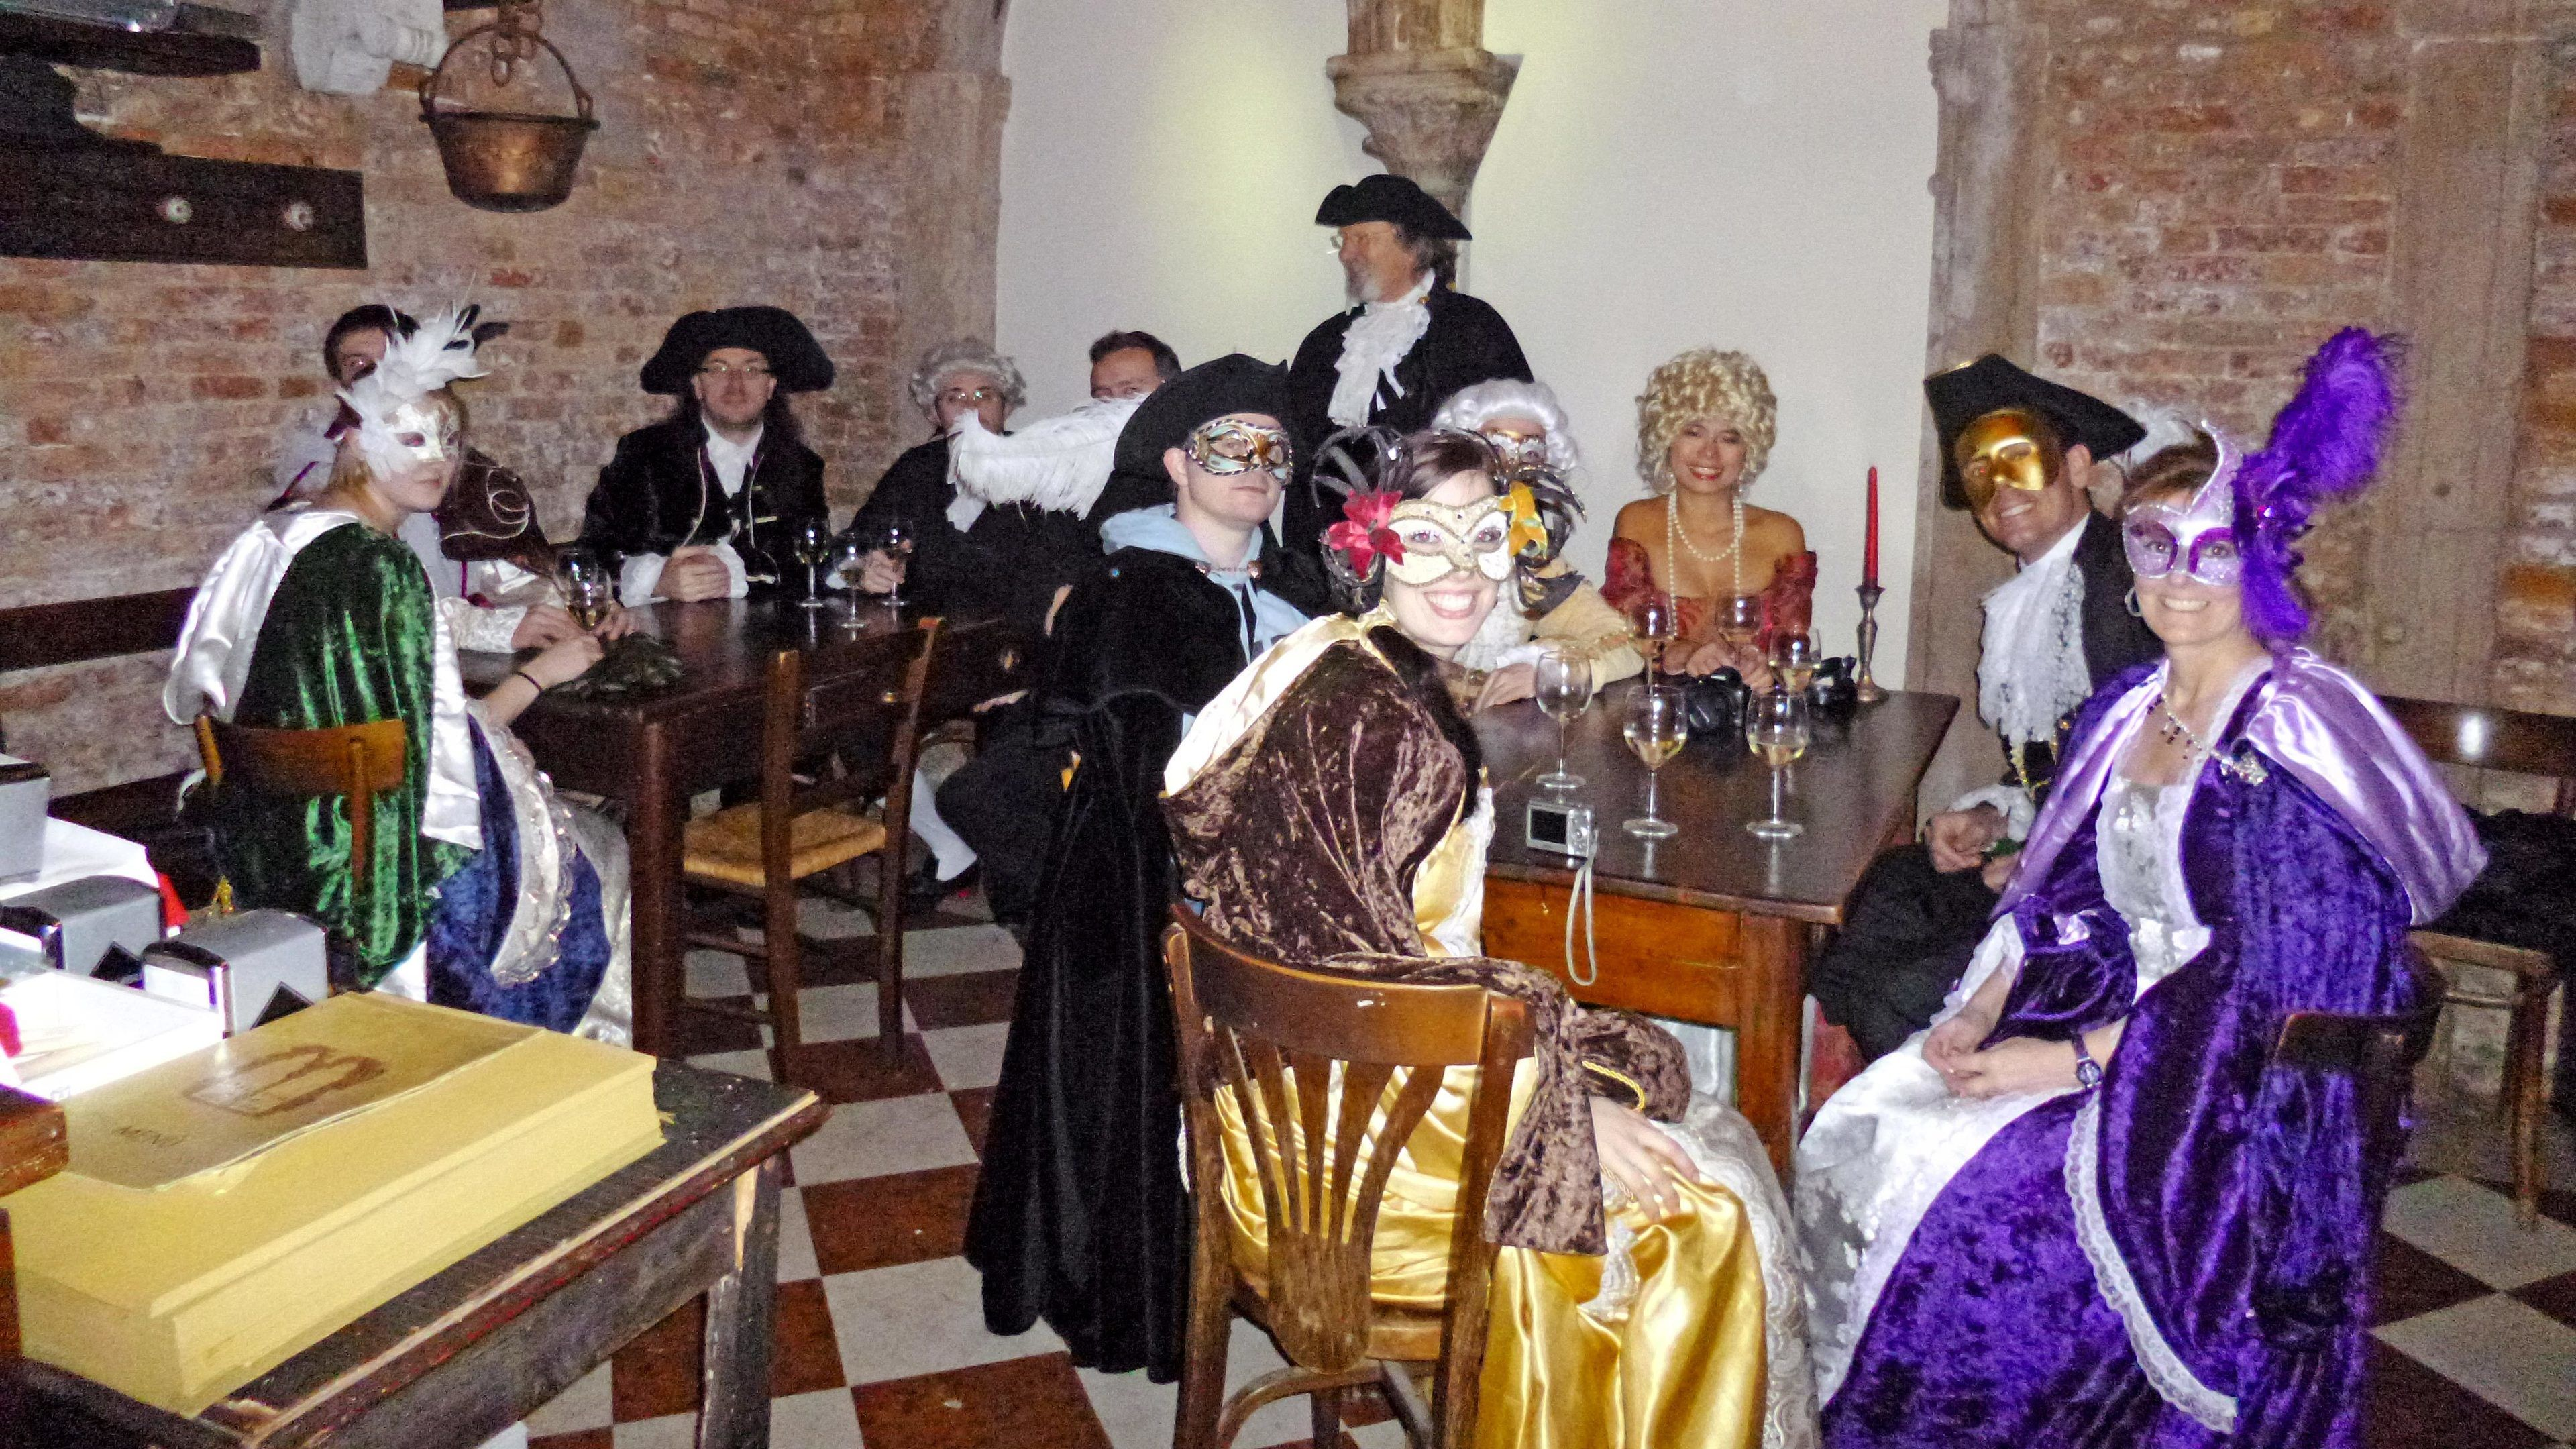 Group enjoying the Carnival Pub Crawl in Venice